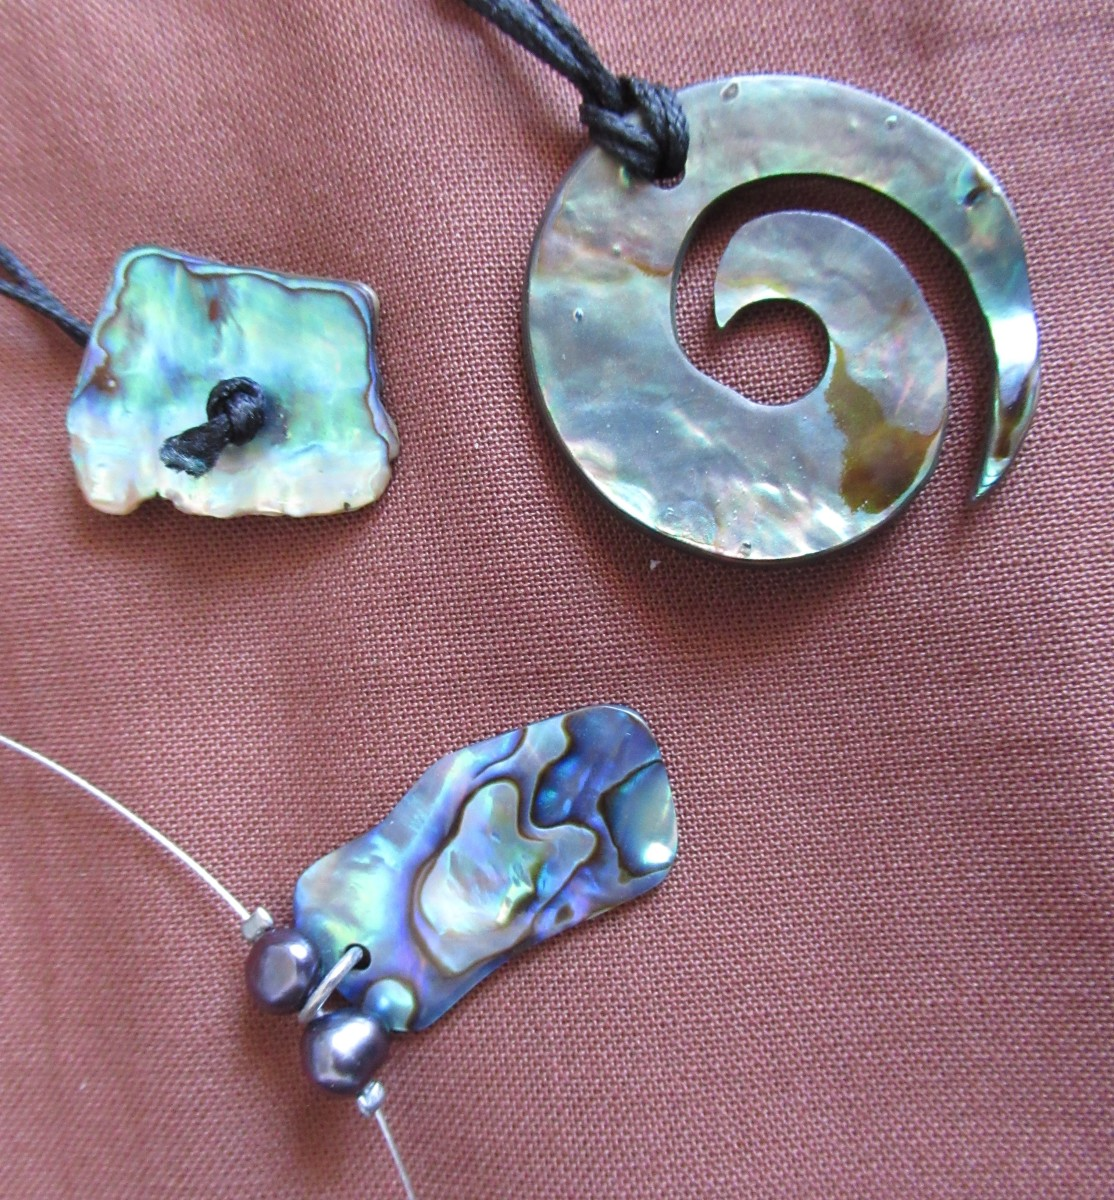 Paua Shell (Abalone) made into Beautiful Jewellery